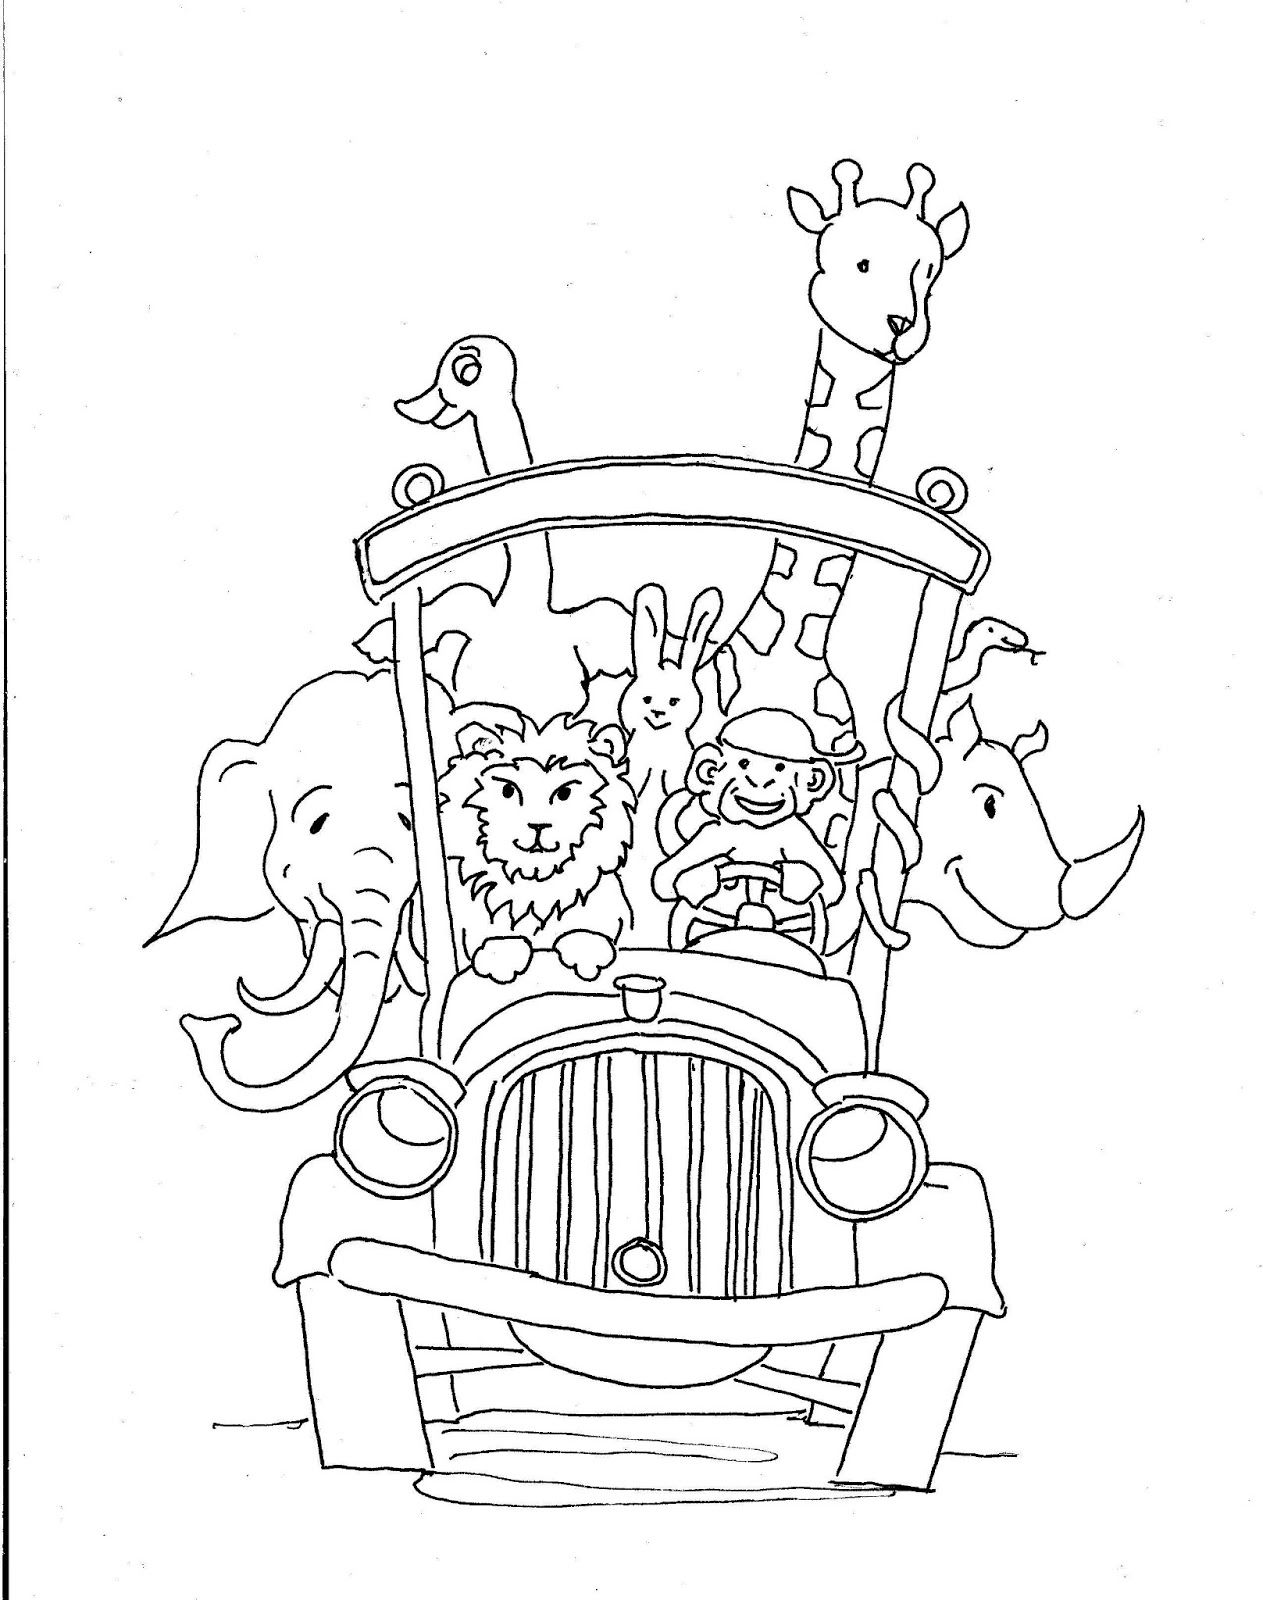 Animal School Bus Printable Drawing Page Cool coloring